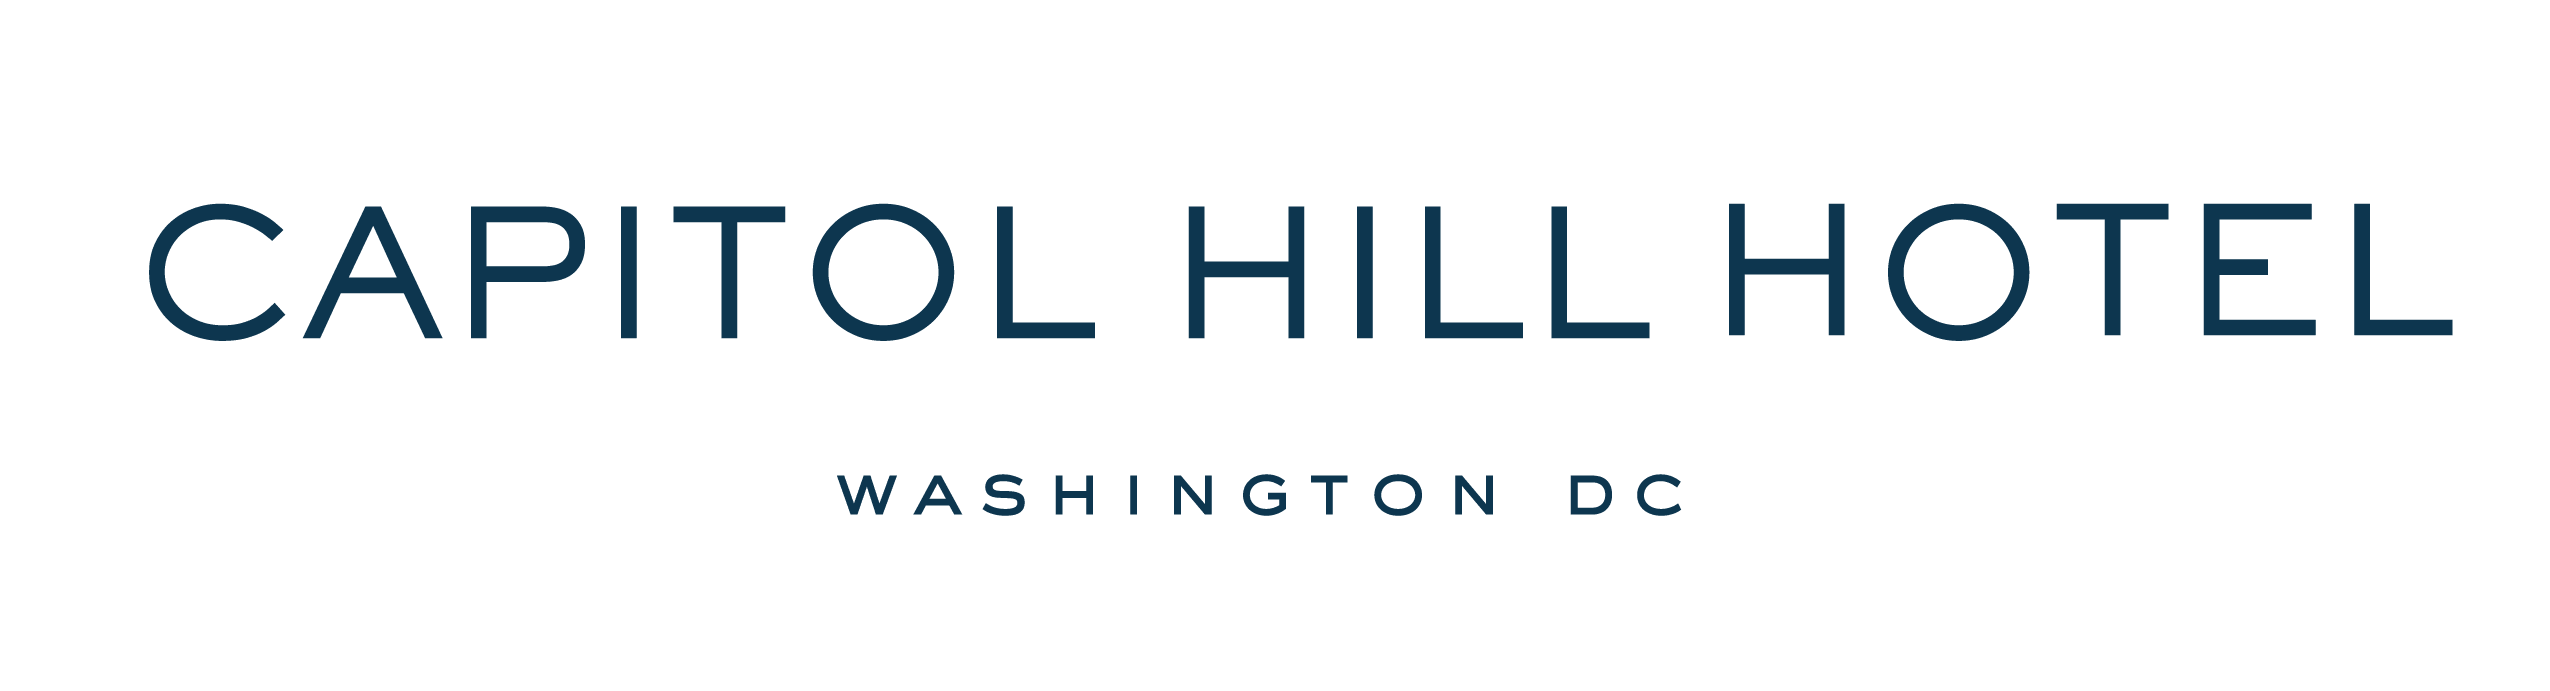 Capitol Hill Hotel, Washington, D.C. Logo